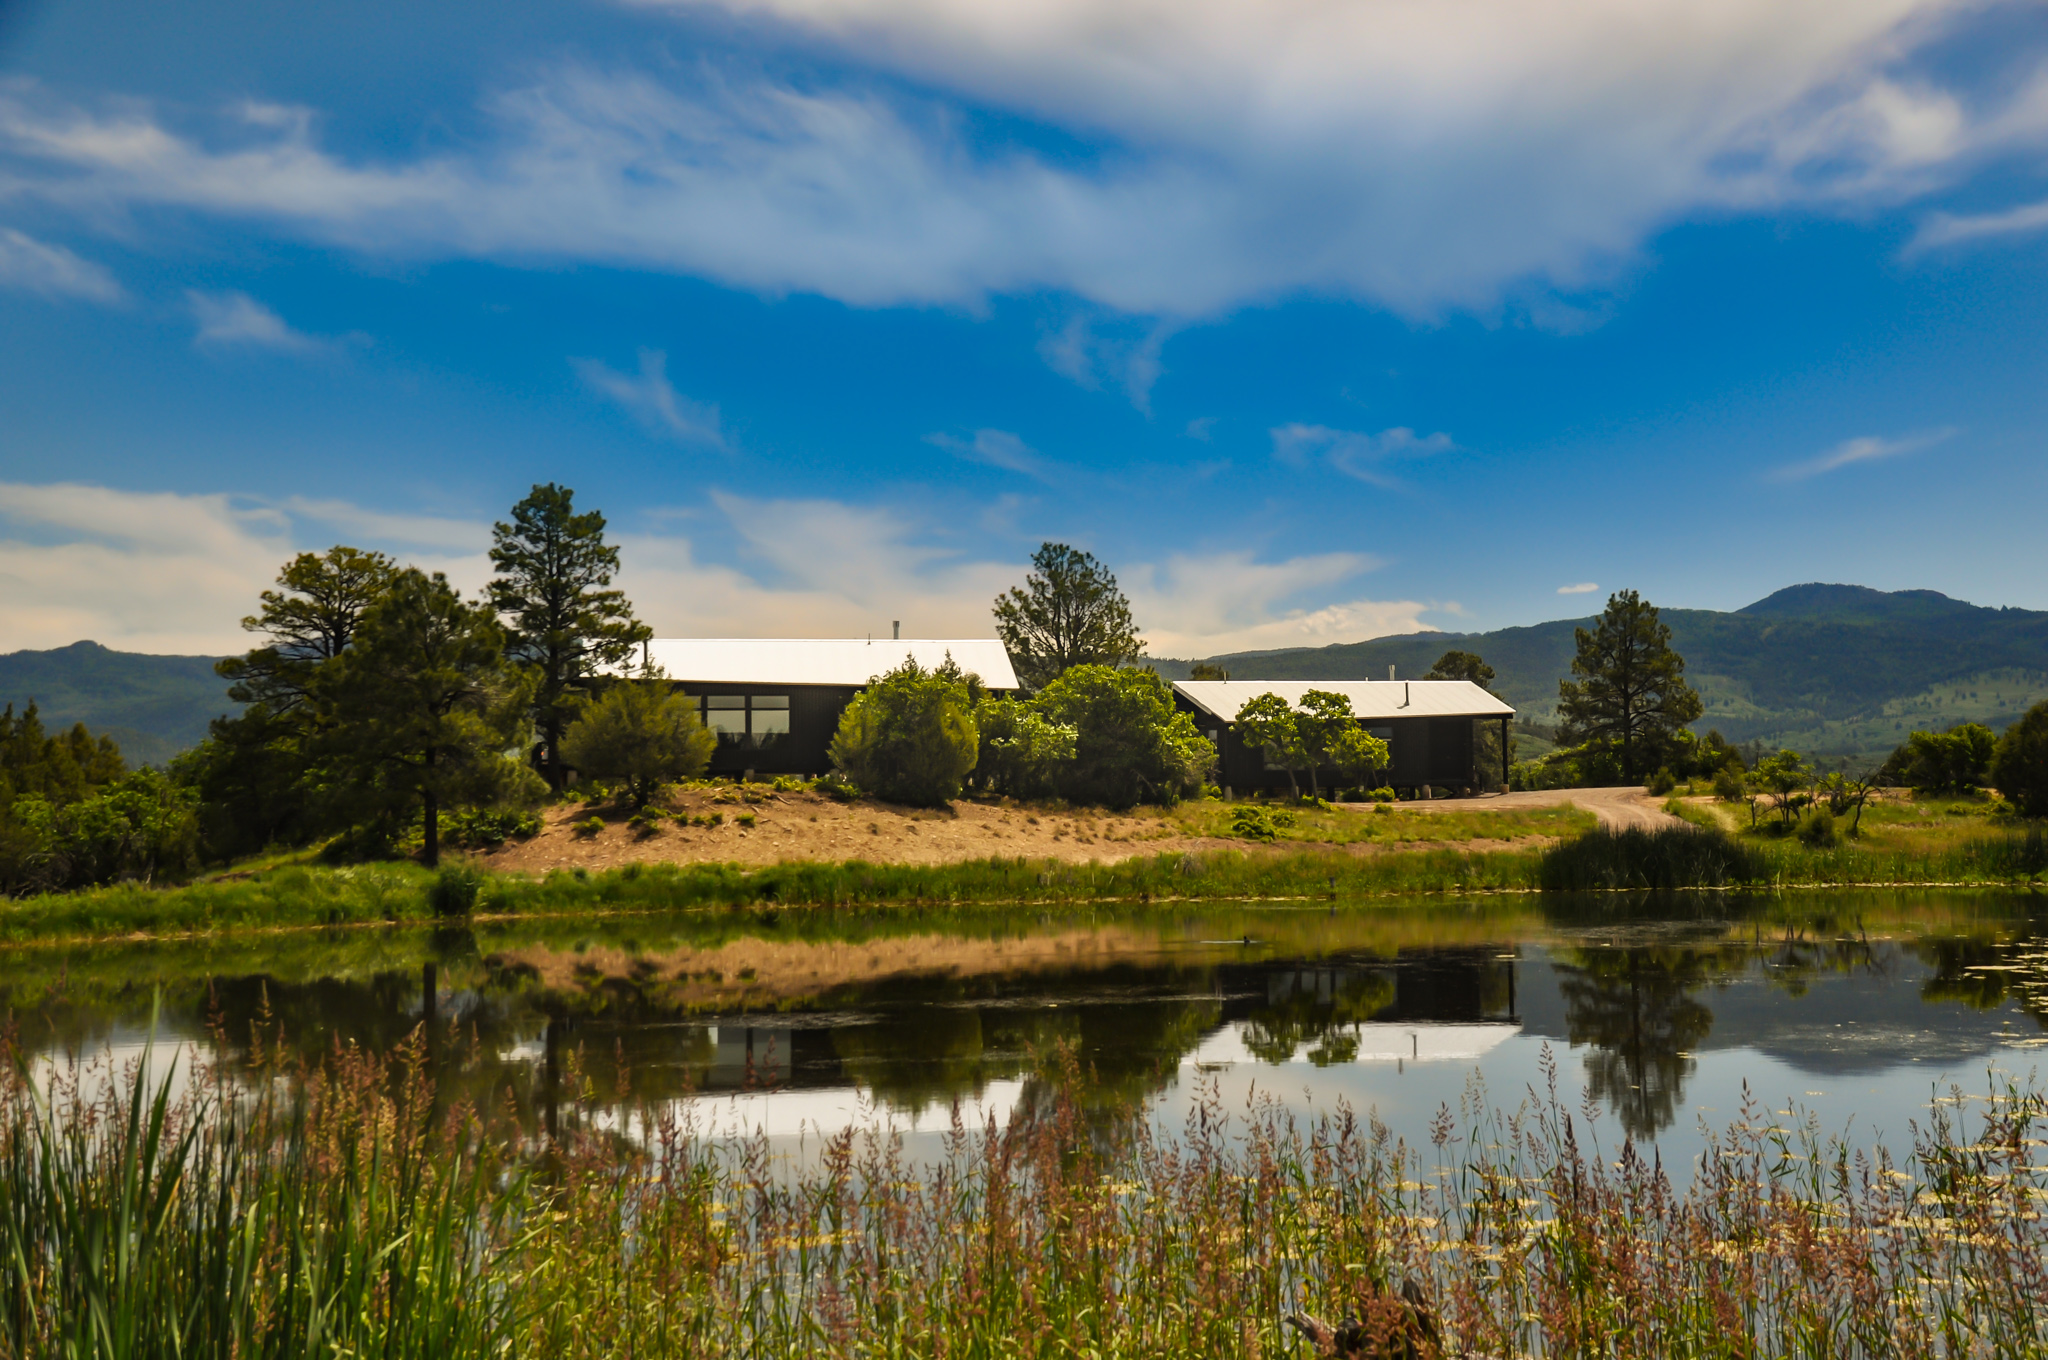 Lakefront Cabins - Chama, NM